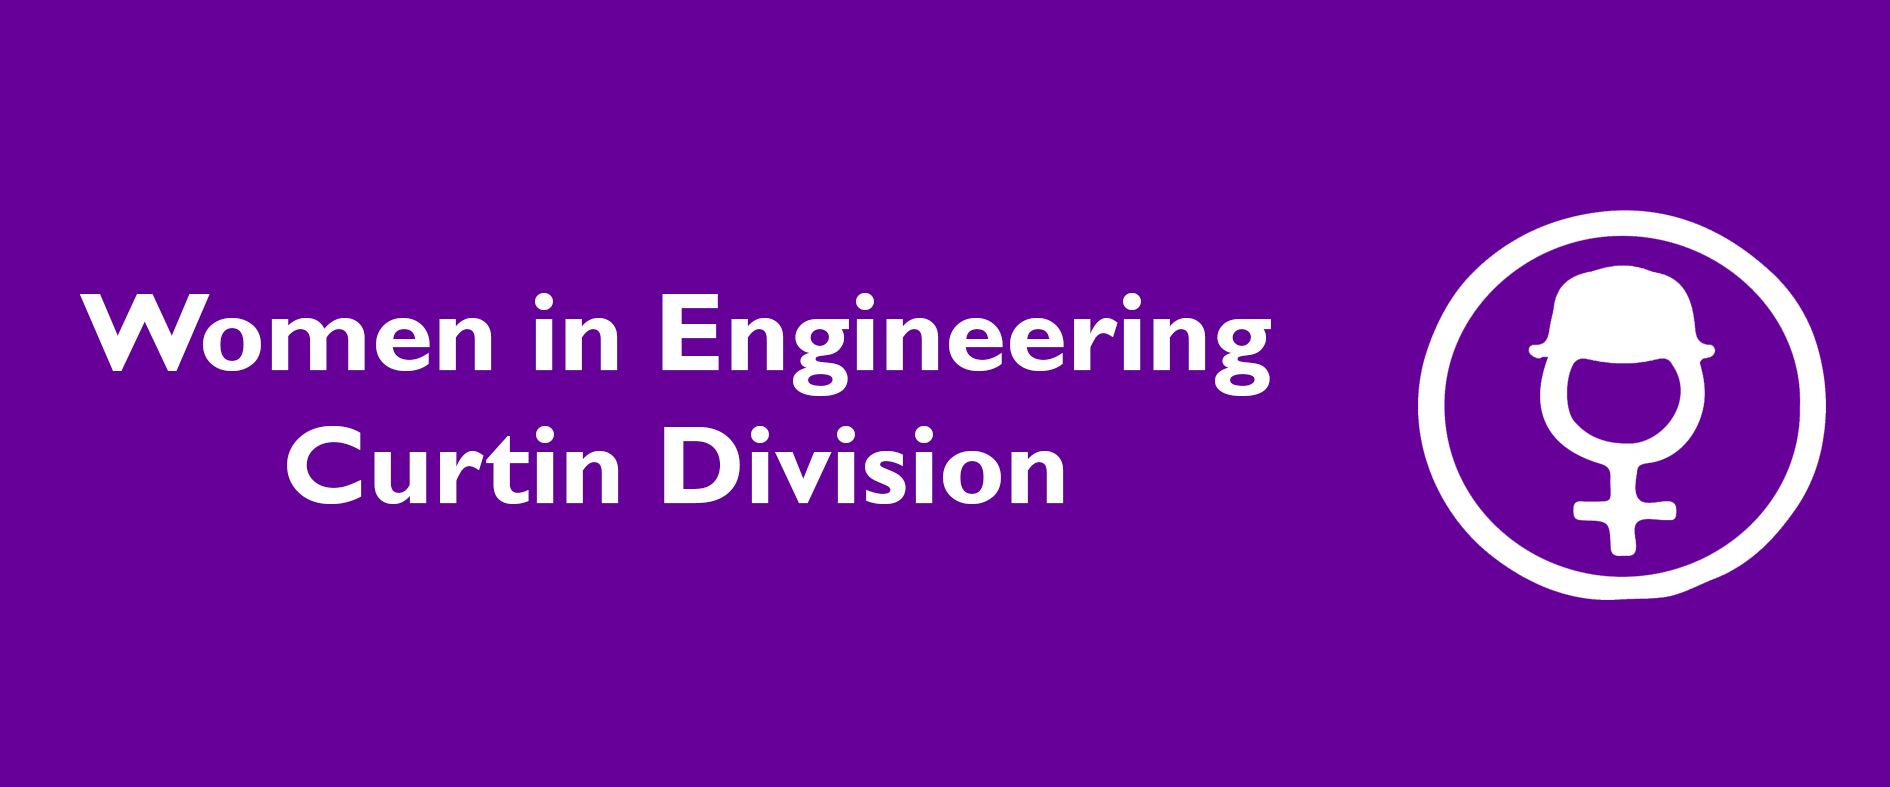 Women in Engineering Curtin Division